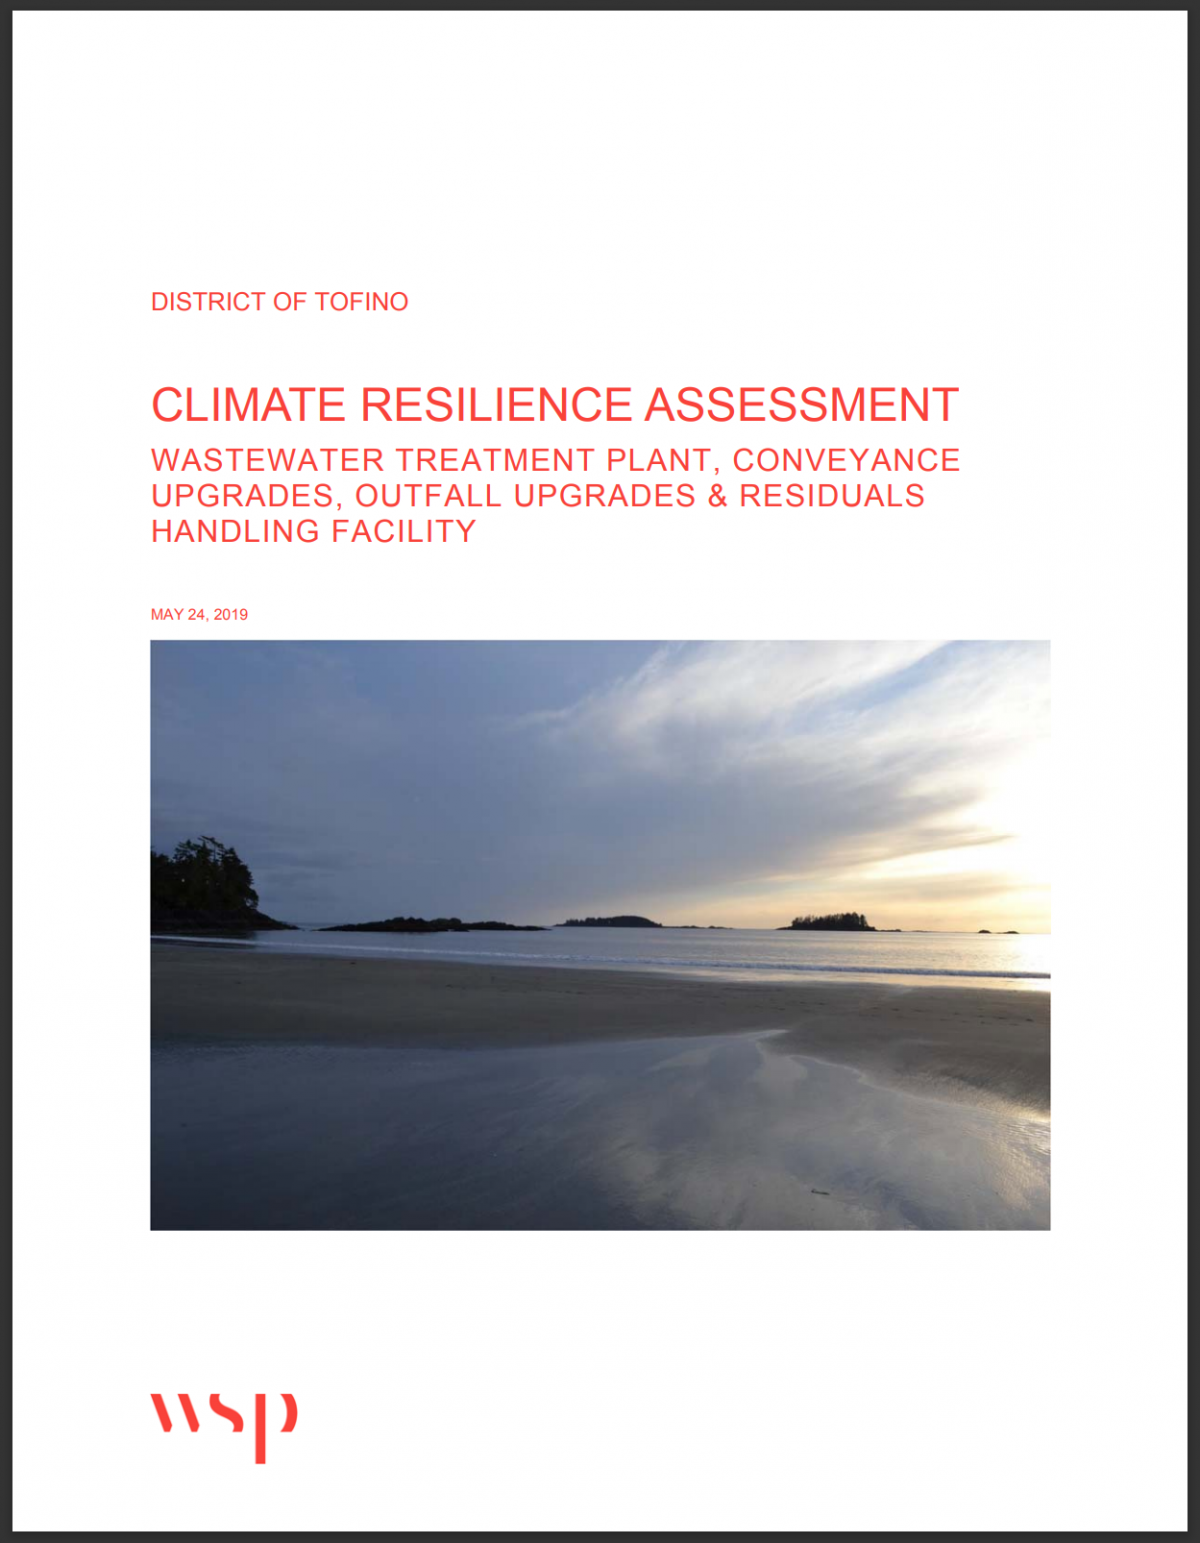 CLIMATE RESILIENCE ASSESSMENT: WASTEWATER TREATMENT PLANT, CONVEYANCE UPGRADES, OUTFALL UPGRADES & RESIDUALS HANDLING FACILITY, DISTRICT OF TOFINO